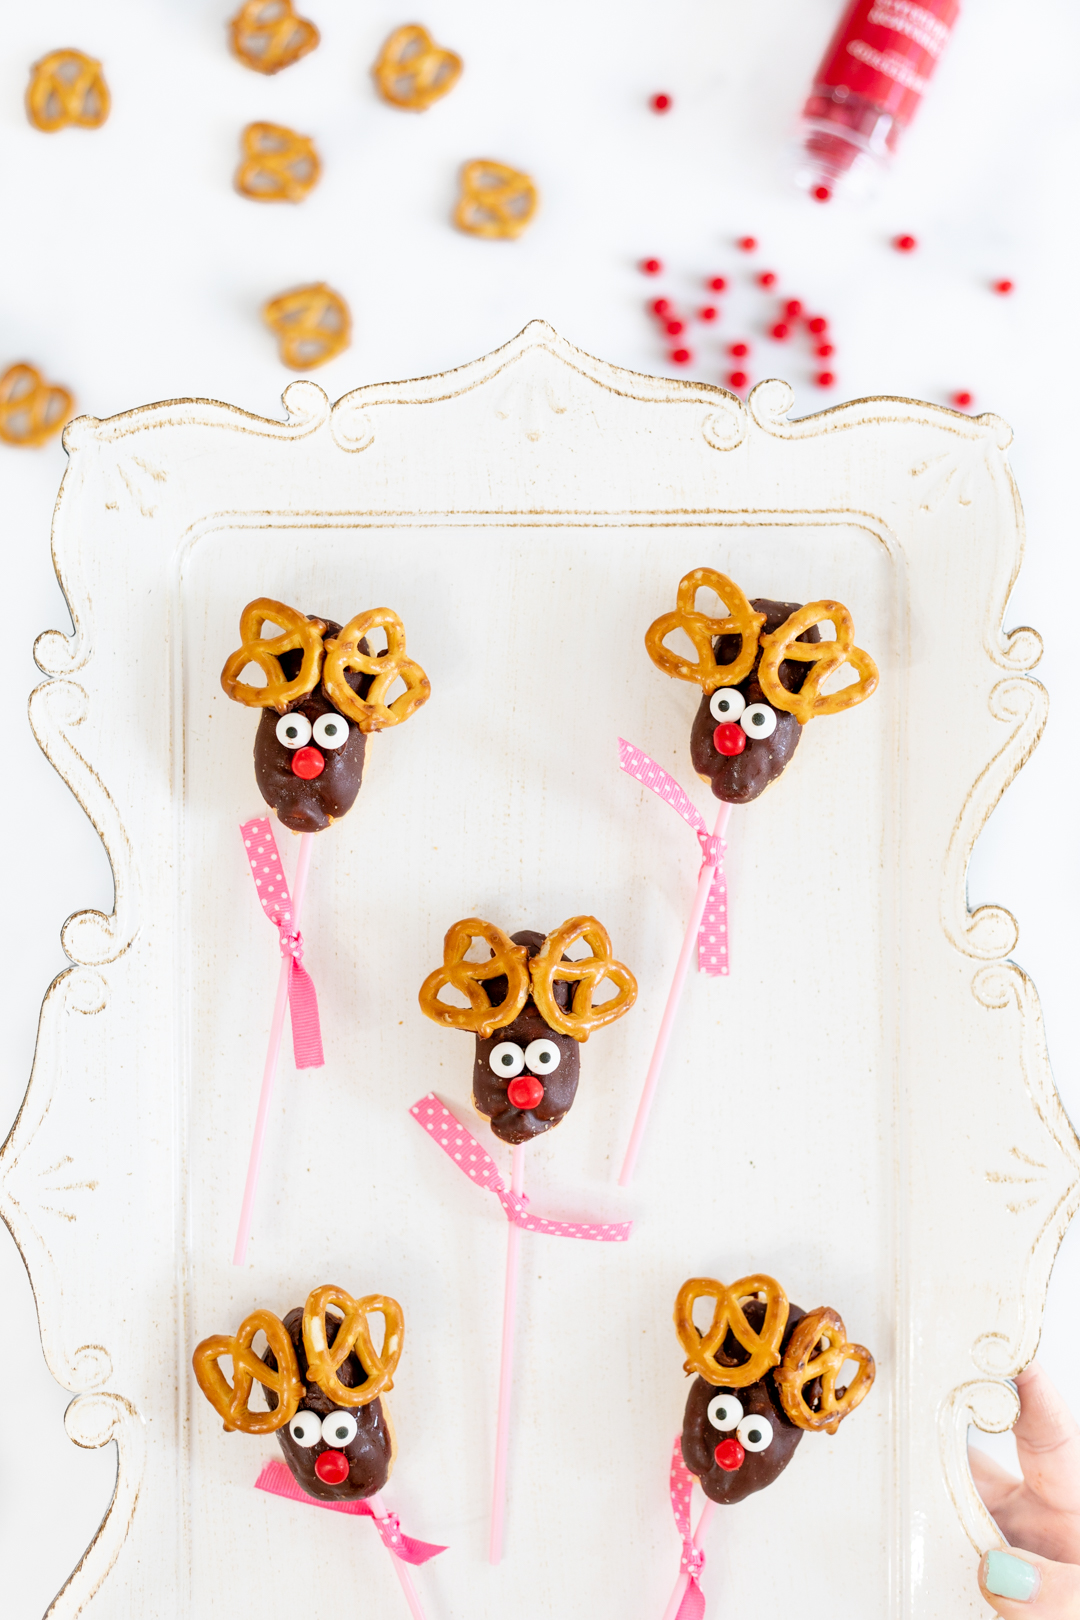 Reindeer lollipops on a tray.